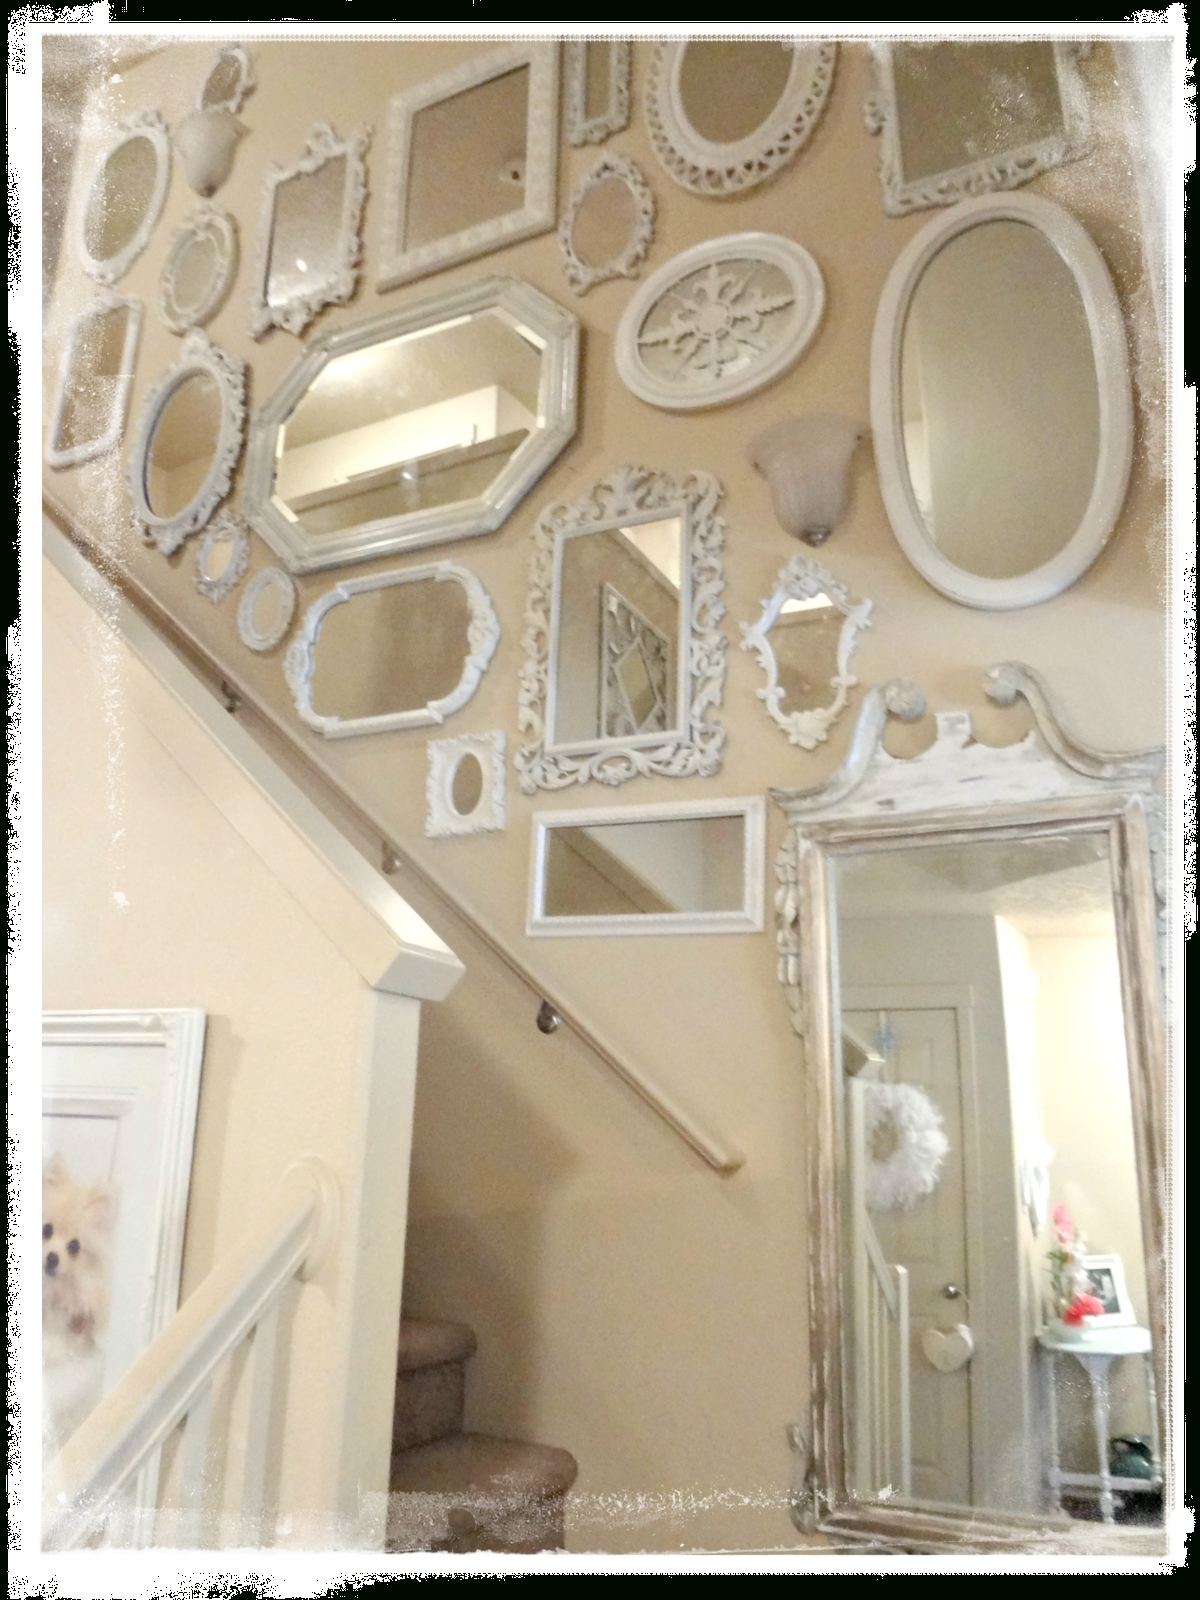 Shabby Chic Mirror ~ Holst Within Chabby Chic Mirror (Image 14 of 20)